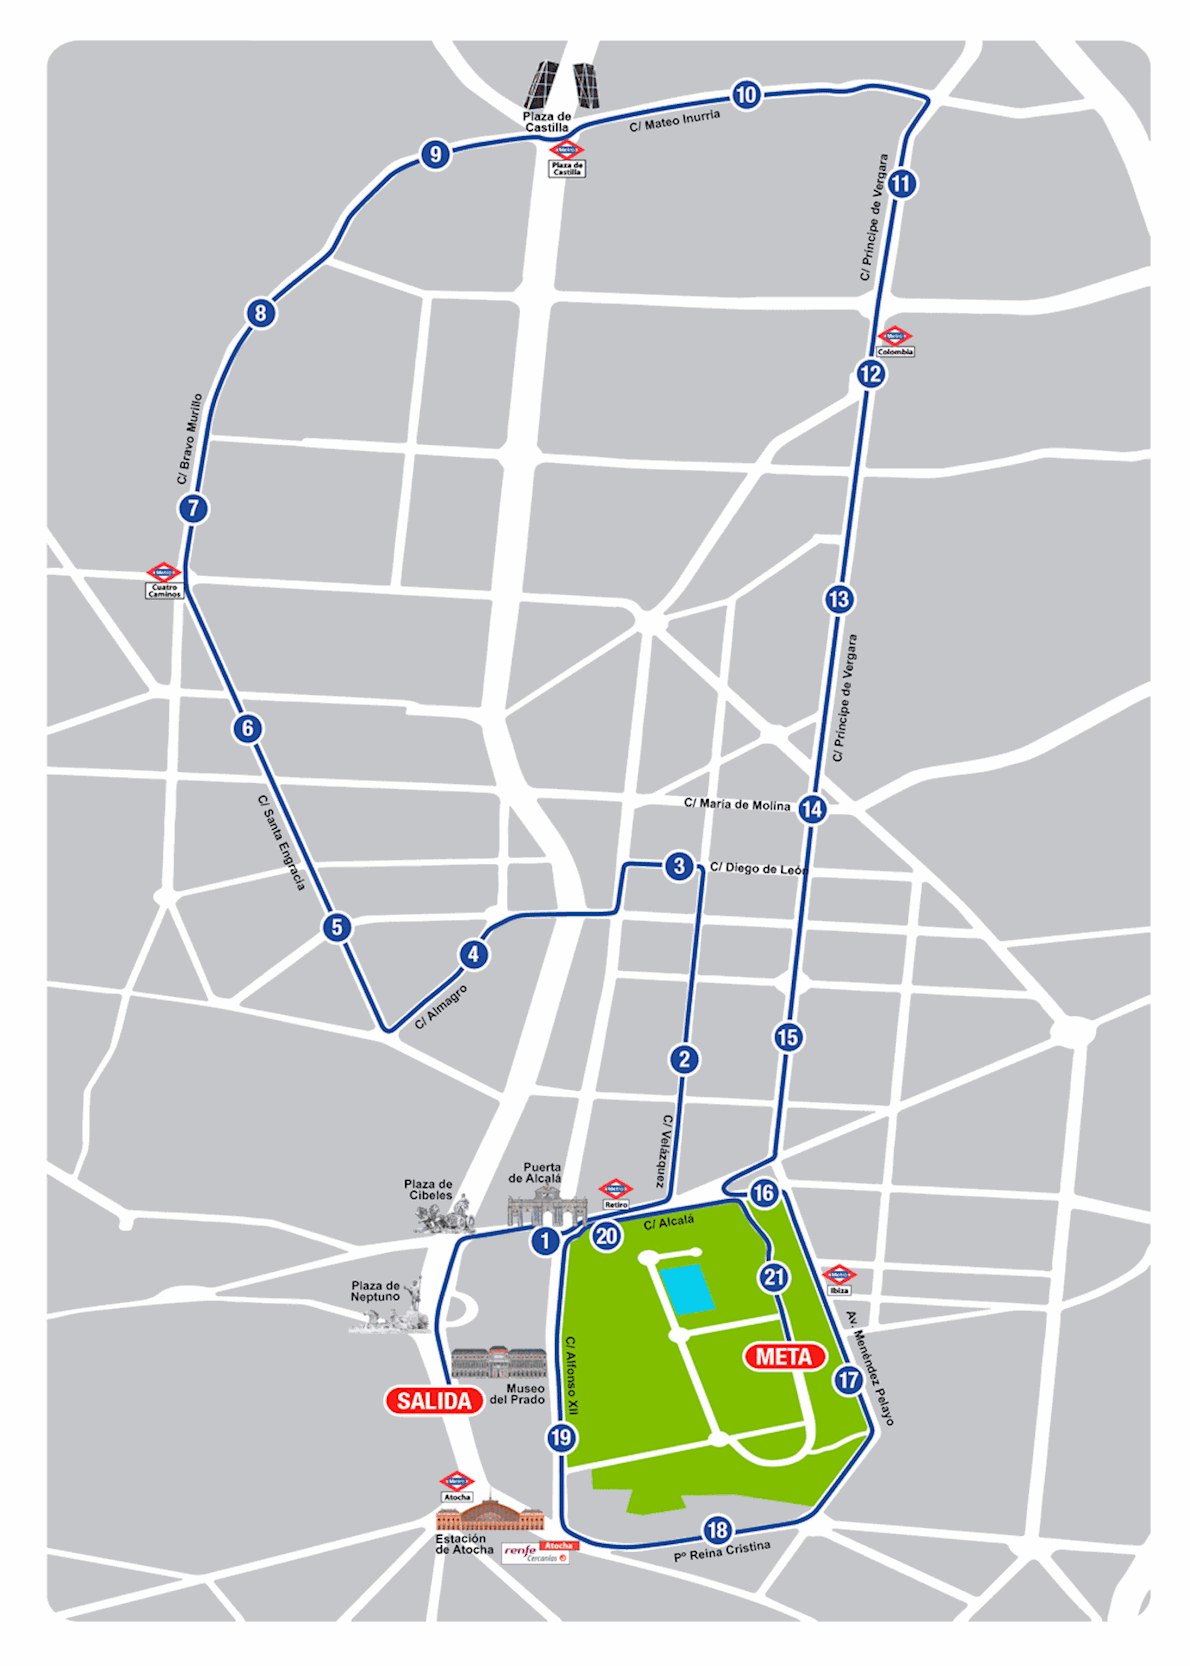 Movistar Medio Maratón de Madrid Mappa del percorso